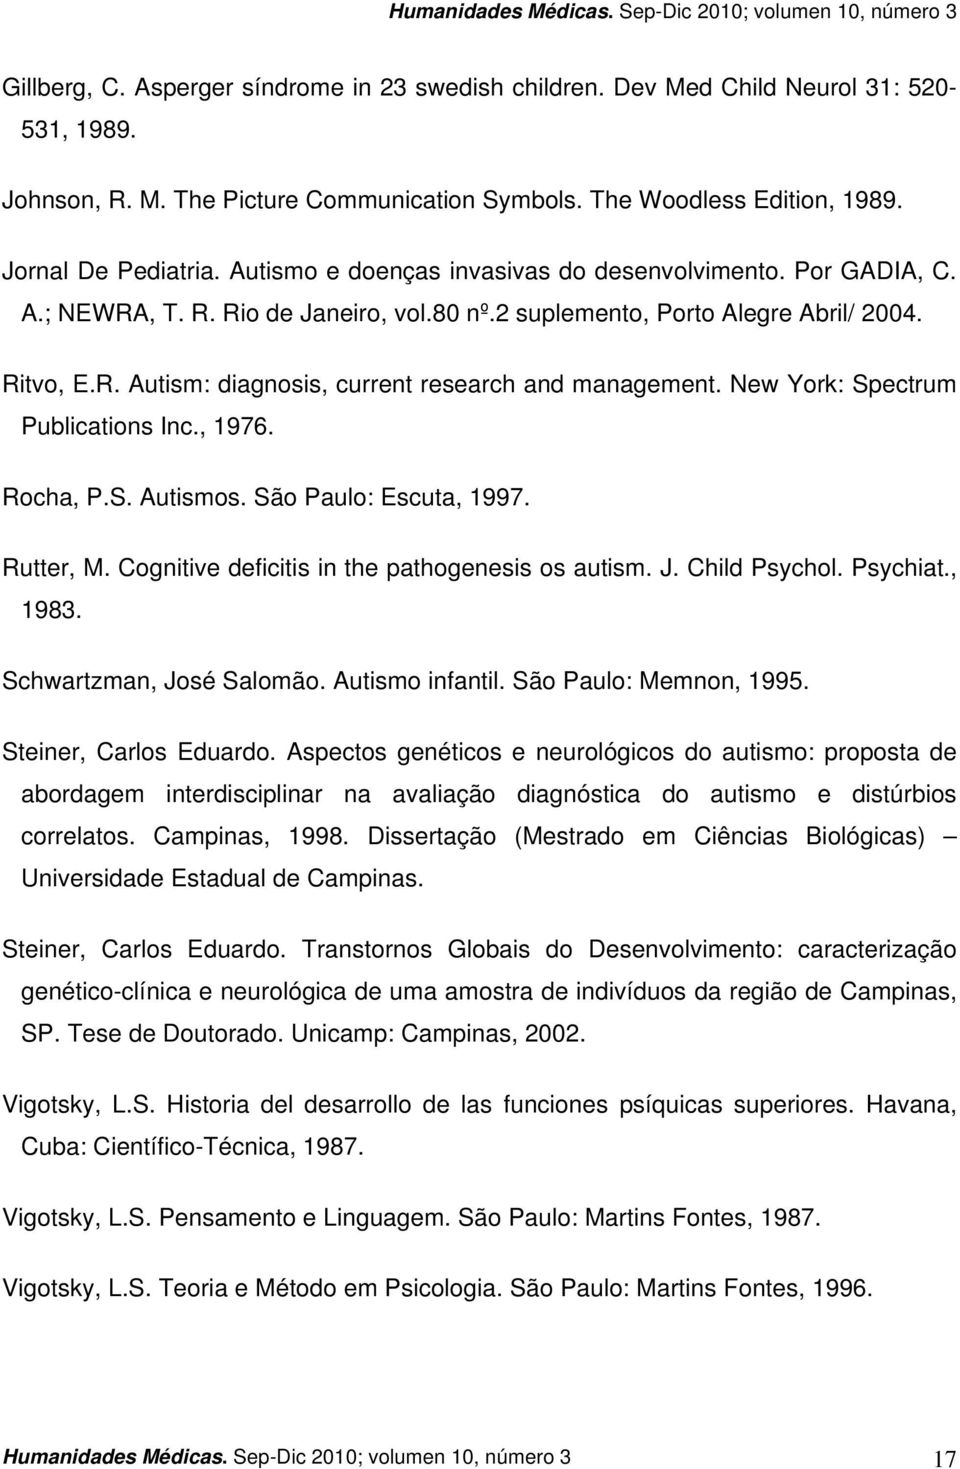 New York: Spectrum Publications Inc., 1976. Rocha, P.S. Autismos. São Paulo: Escuta, 1997. Rutter, M. Cognitive deficitis in the pathogenesis os autism. J. Child Psychol. Psychiat., 1983.